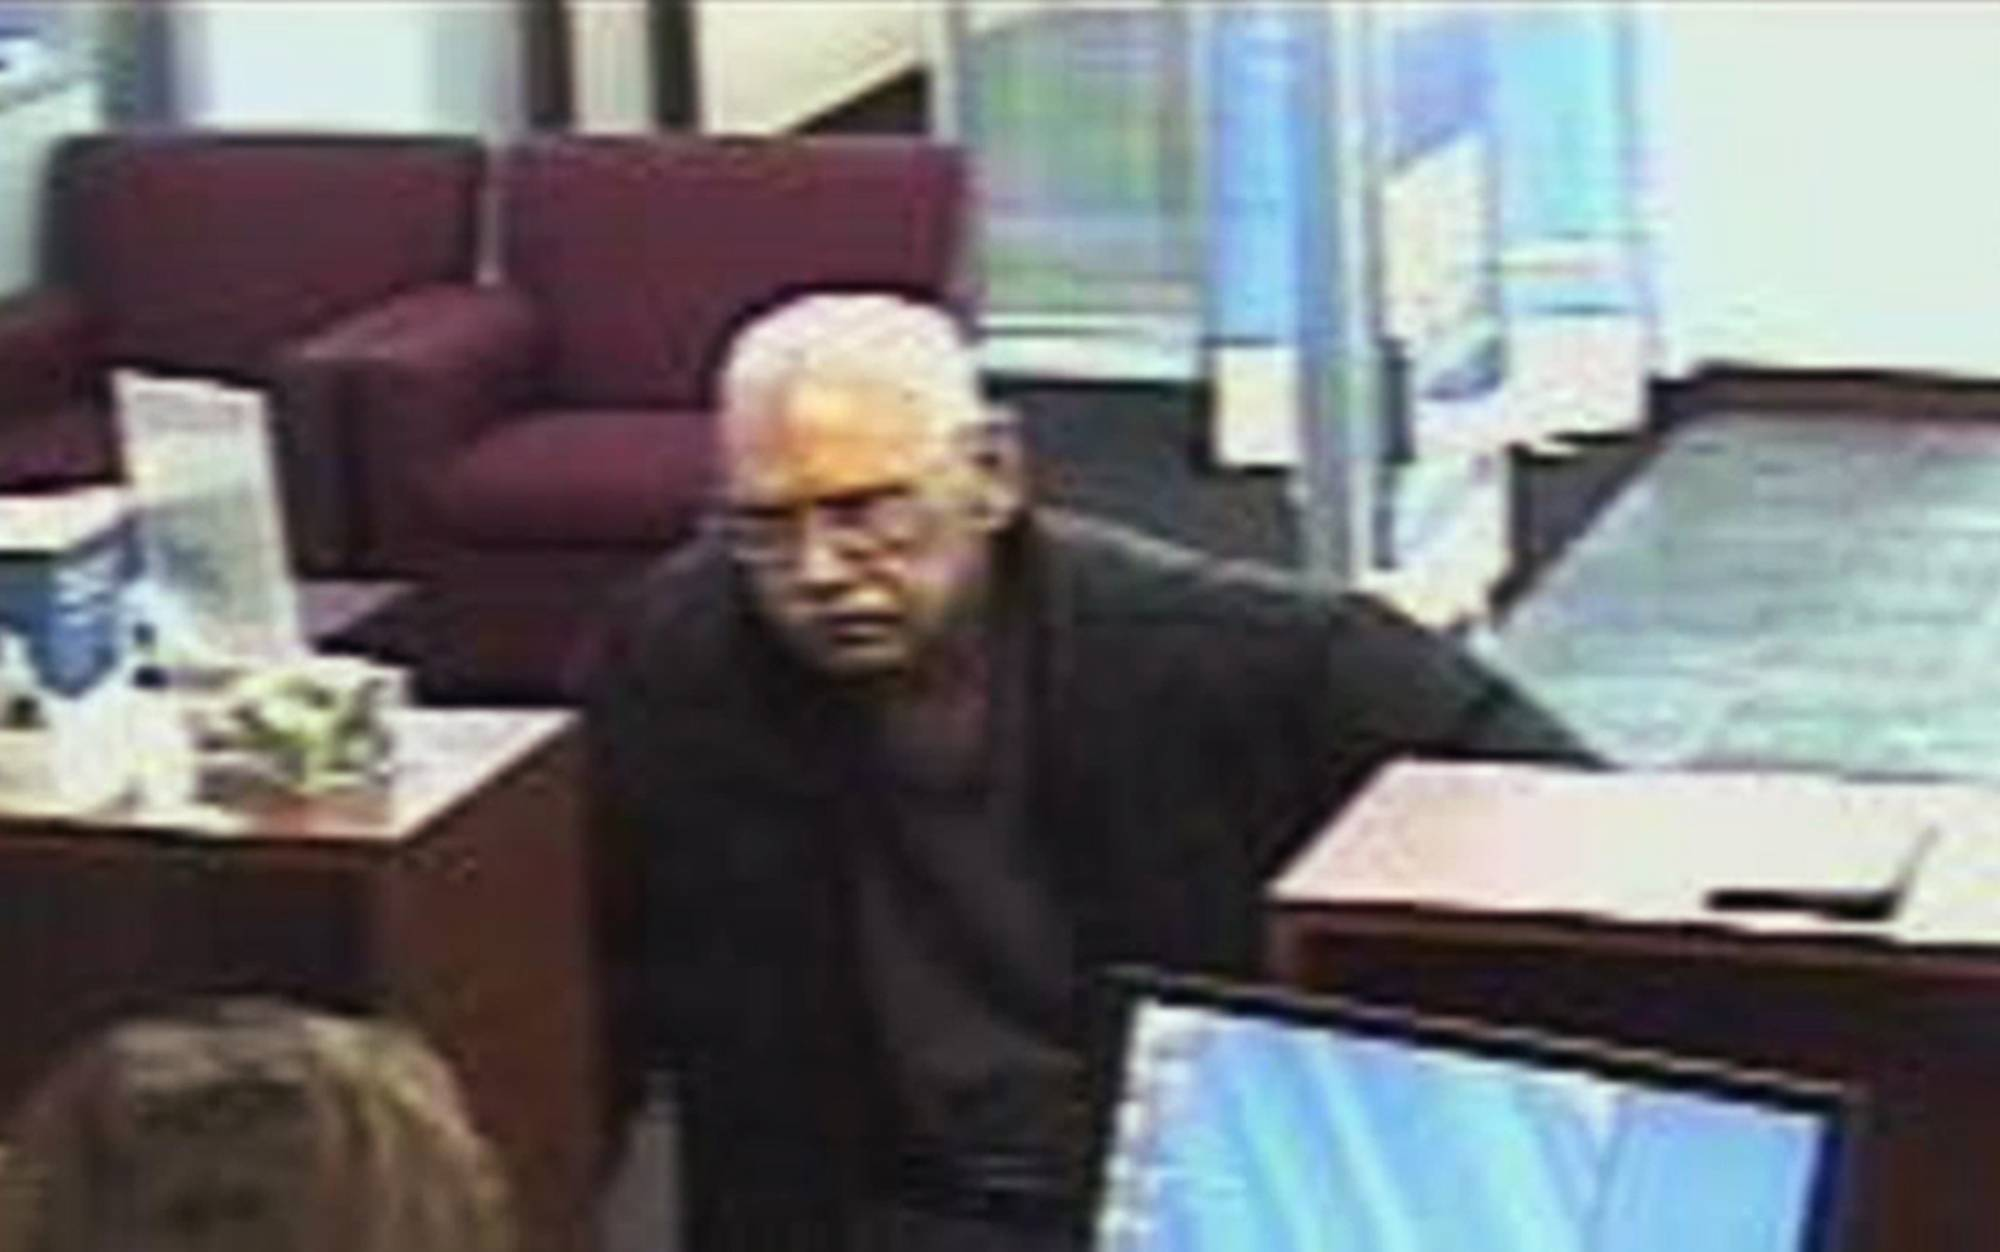 This image from a security video shows Walter Unbehaun robbing a bank in Niles in February 2013. The 73-year-old Unbehaun told investigators he intended to get caught so he could live his final years behind bars.